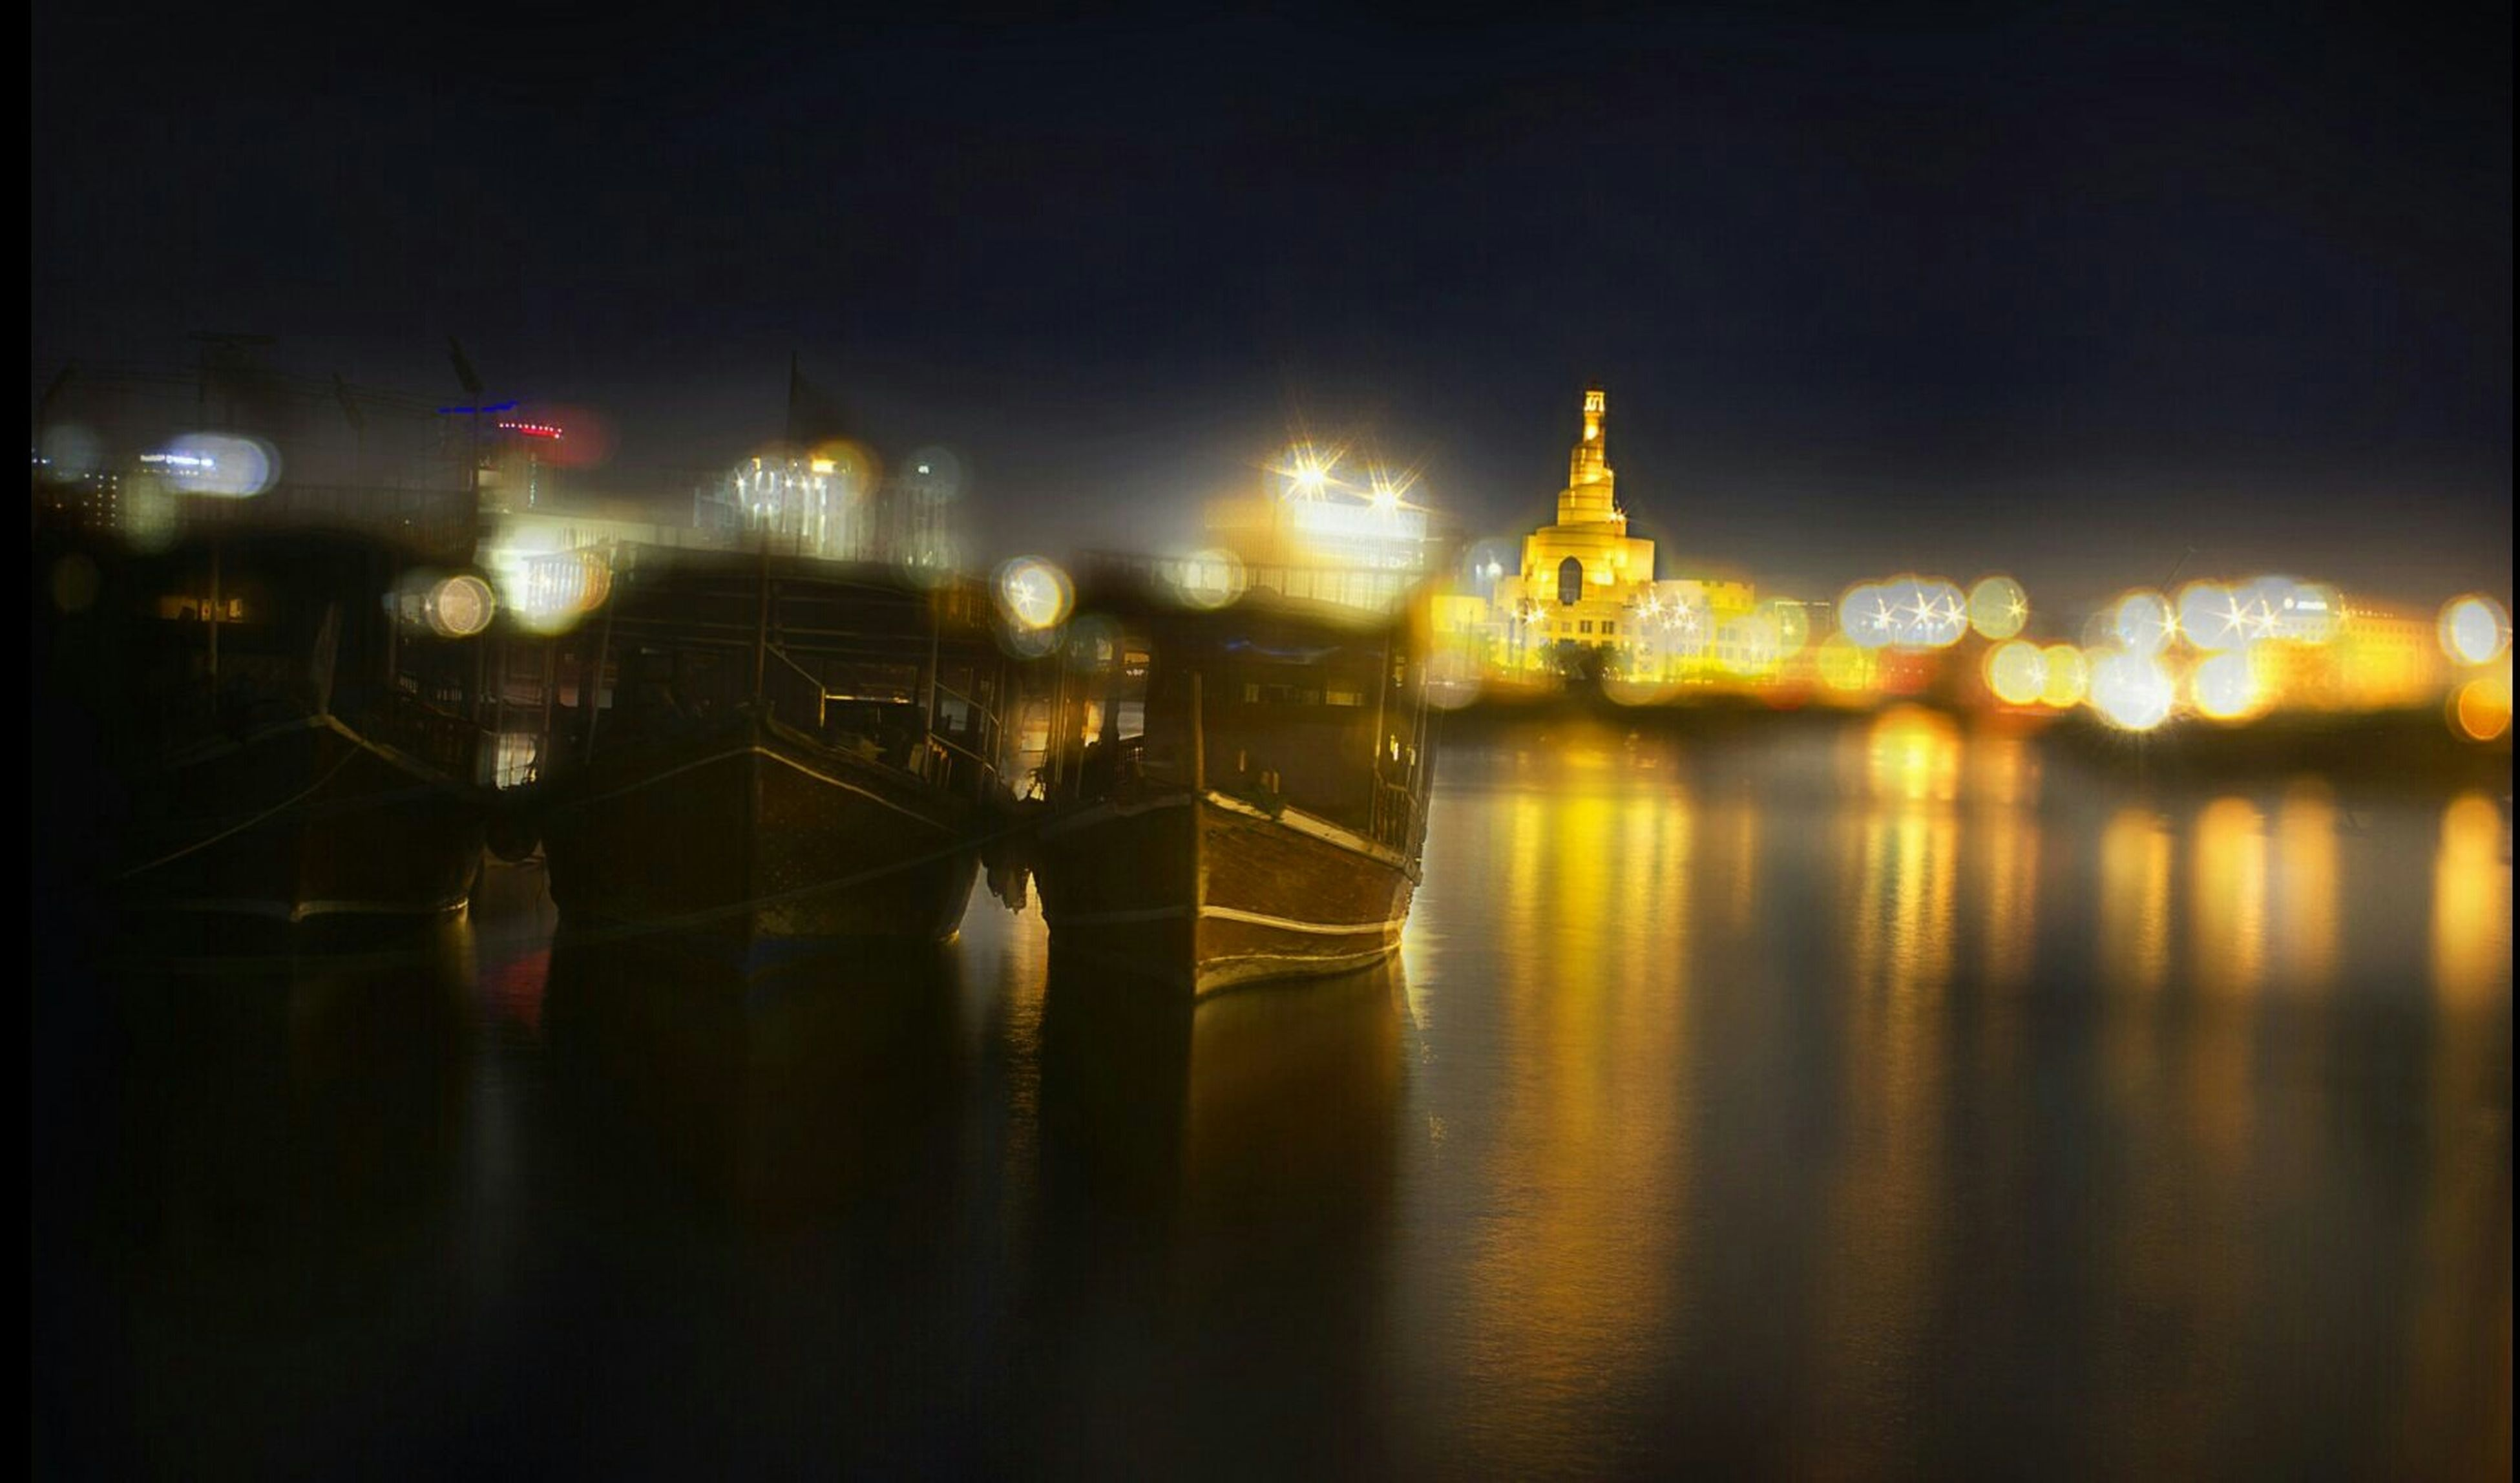 illuminated, night, reflection, built structure, architecture, lighting equipment, water, building exterior, waterfront, light - natural phenomenon, city, no people, river, electric light, sky, street light, light, lit, in a row, dark